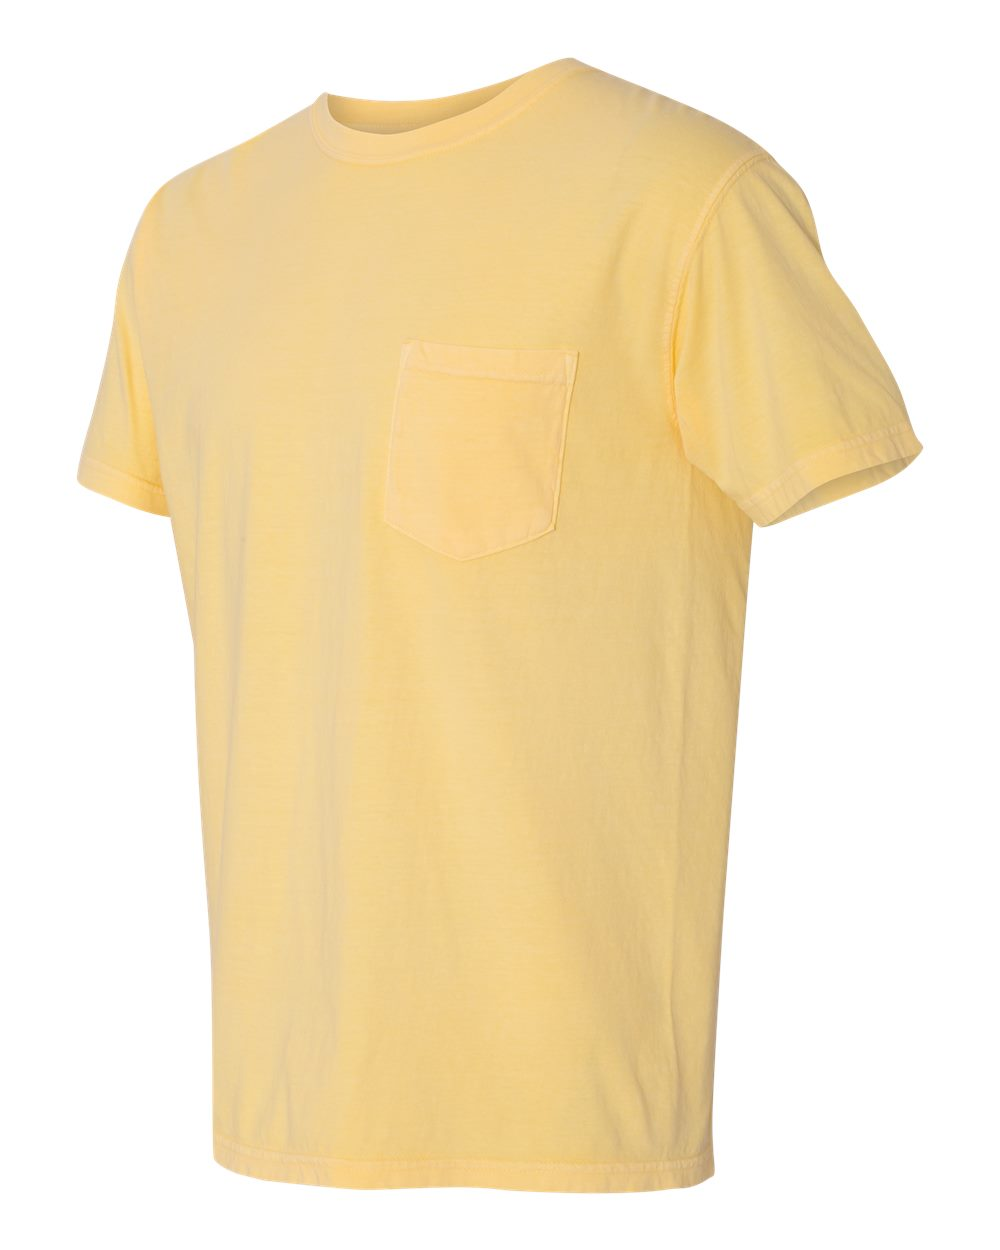 Comfort-Colors-Men-039-s-6-1-oz-Garment-Dyed-Pocket-T-Shirt-6030CC-S-3XL thumbnail 18